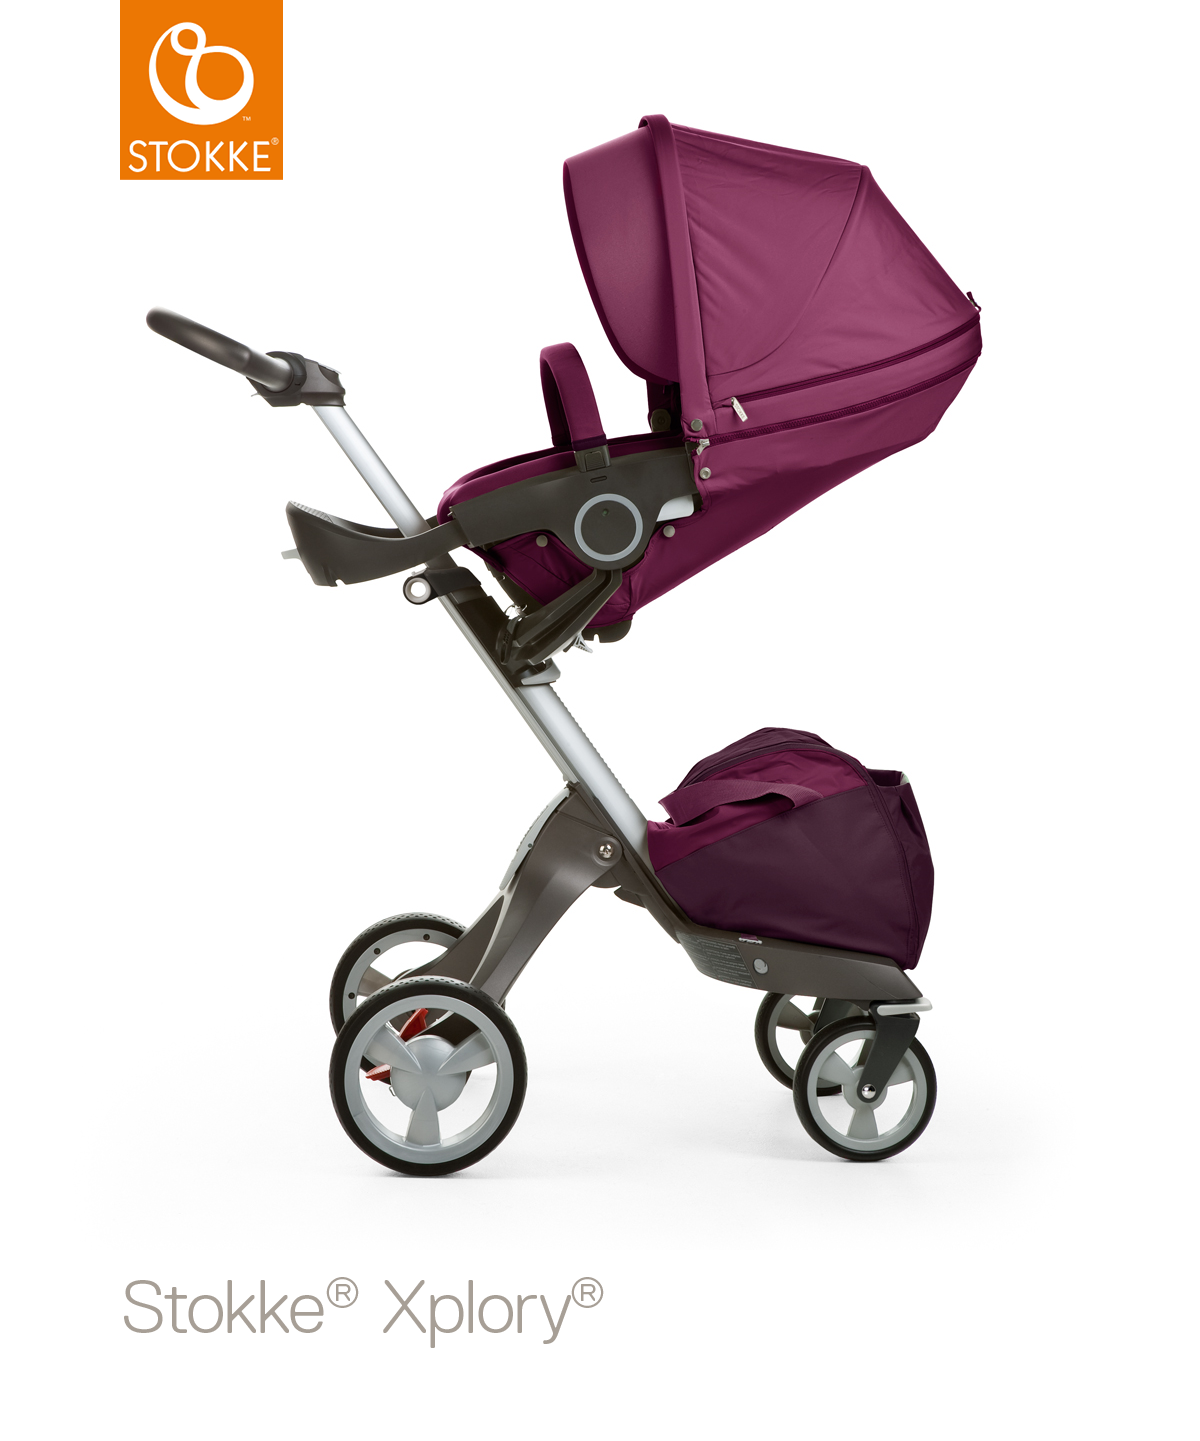 Stokke Stroller Store Stokke Xplory V4 Out About Baby Strollers